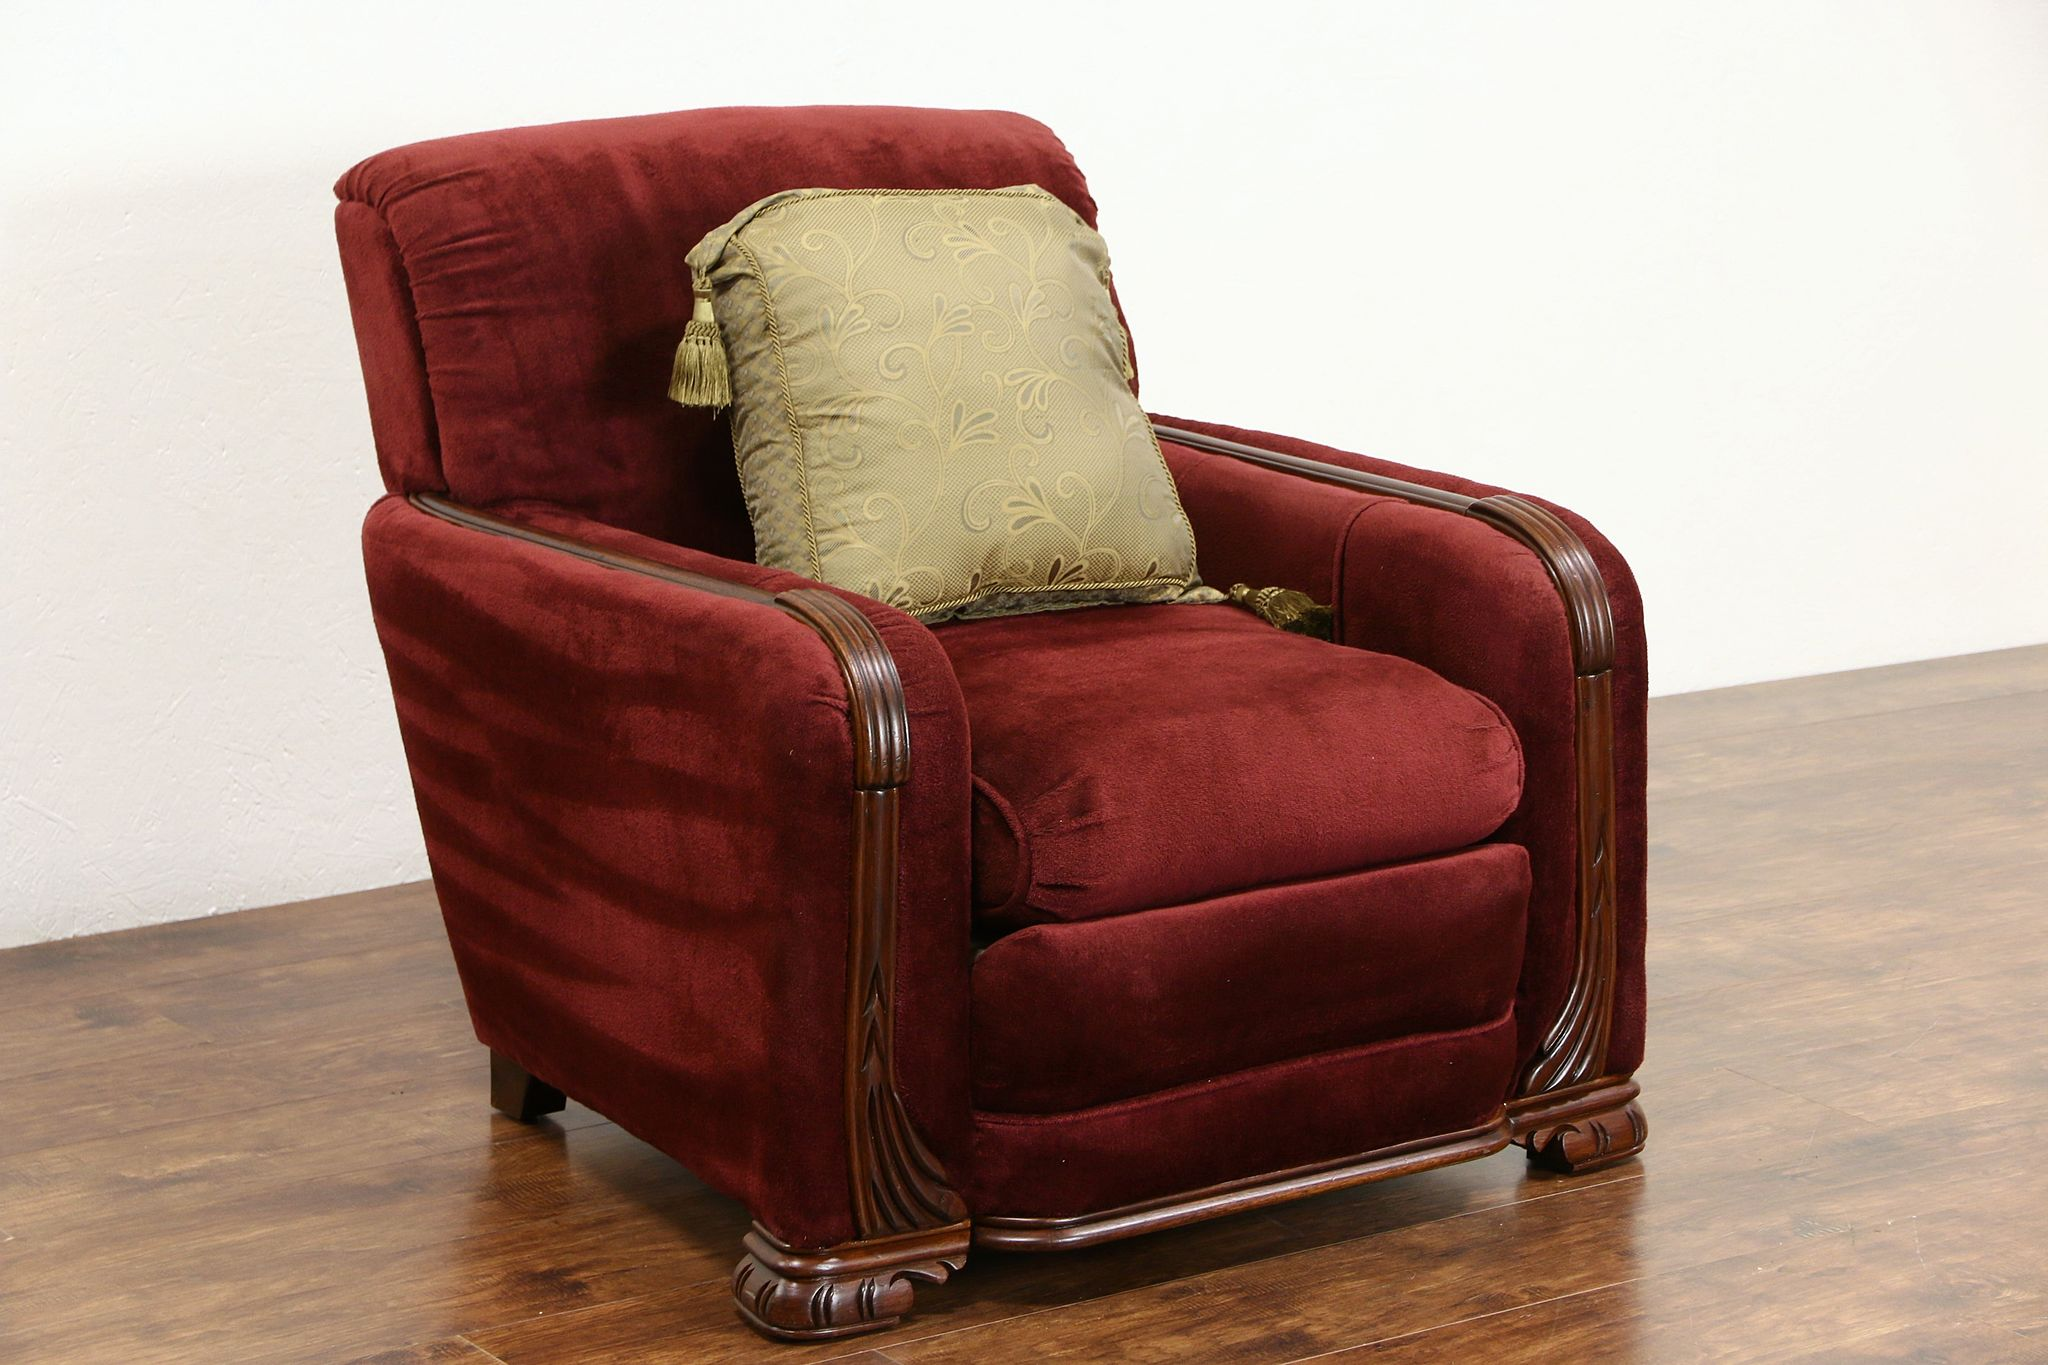 Art deco 1940 vintage large comfortable chair with arms photo